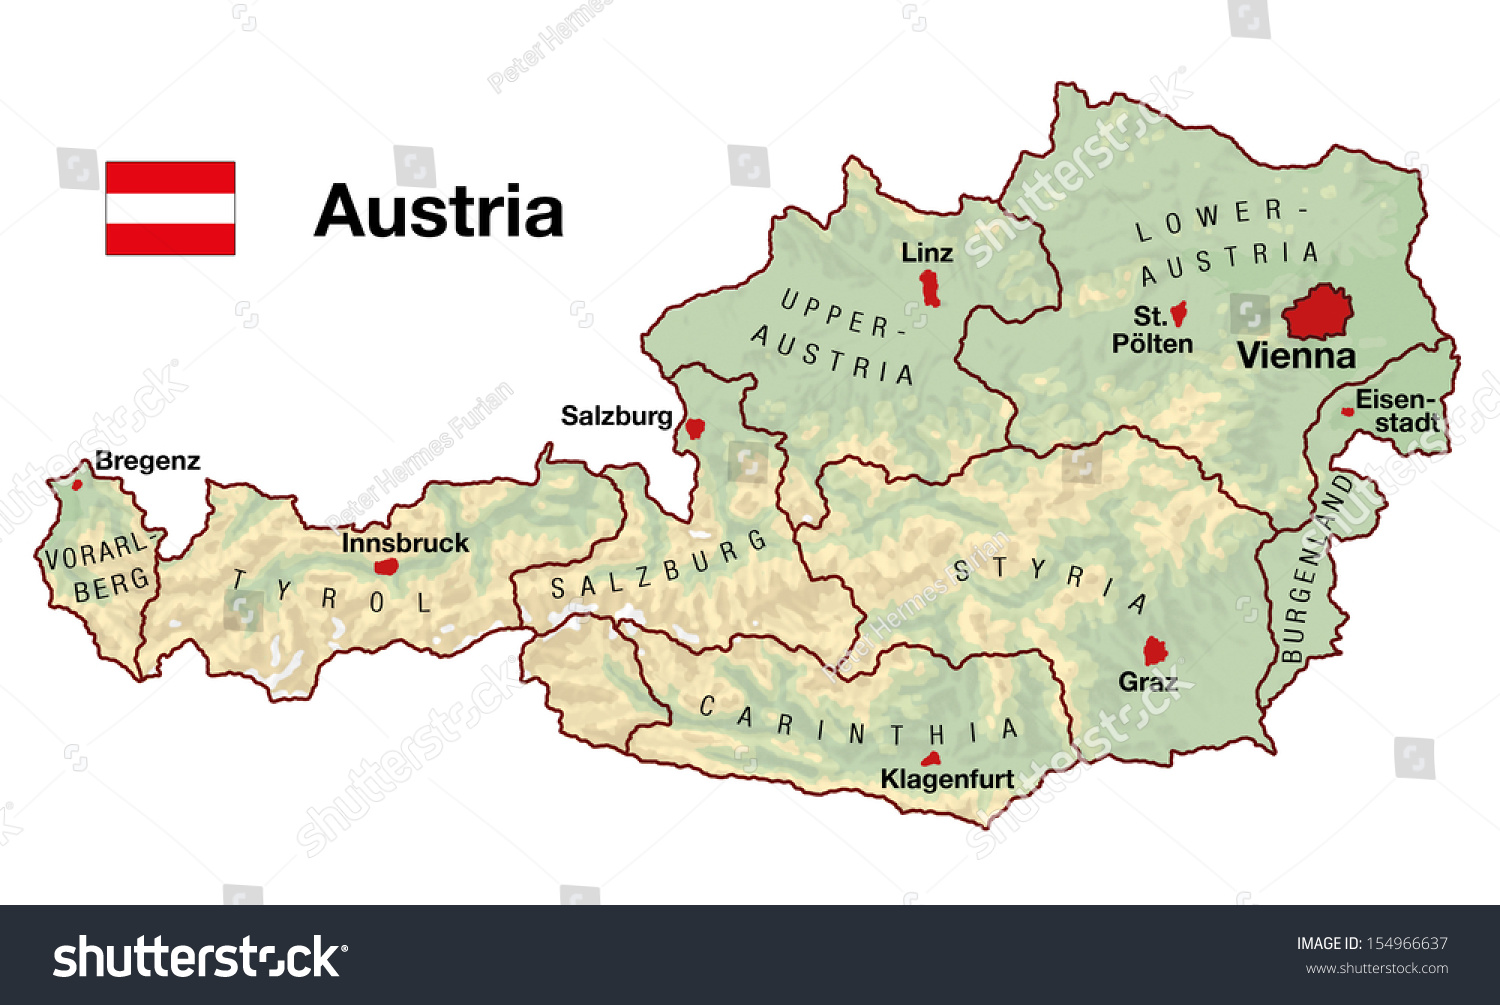 Topographic map austria europe cities federal stock illustration topographic map of austria in europe with cities federal states borders and flag sciox Gallery